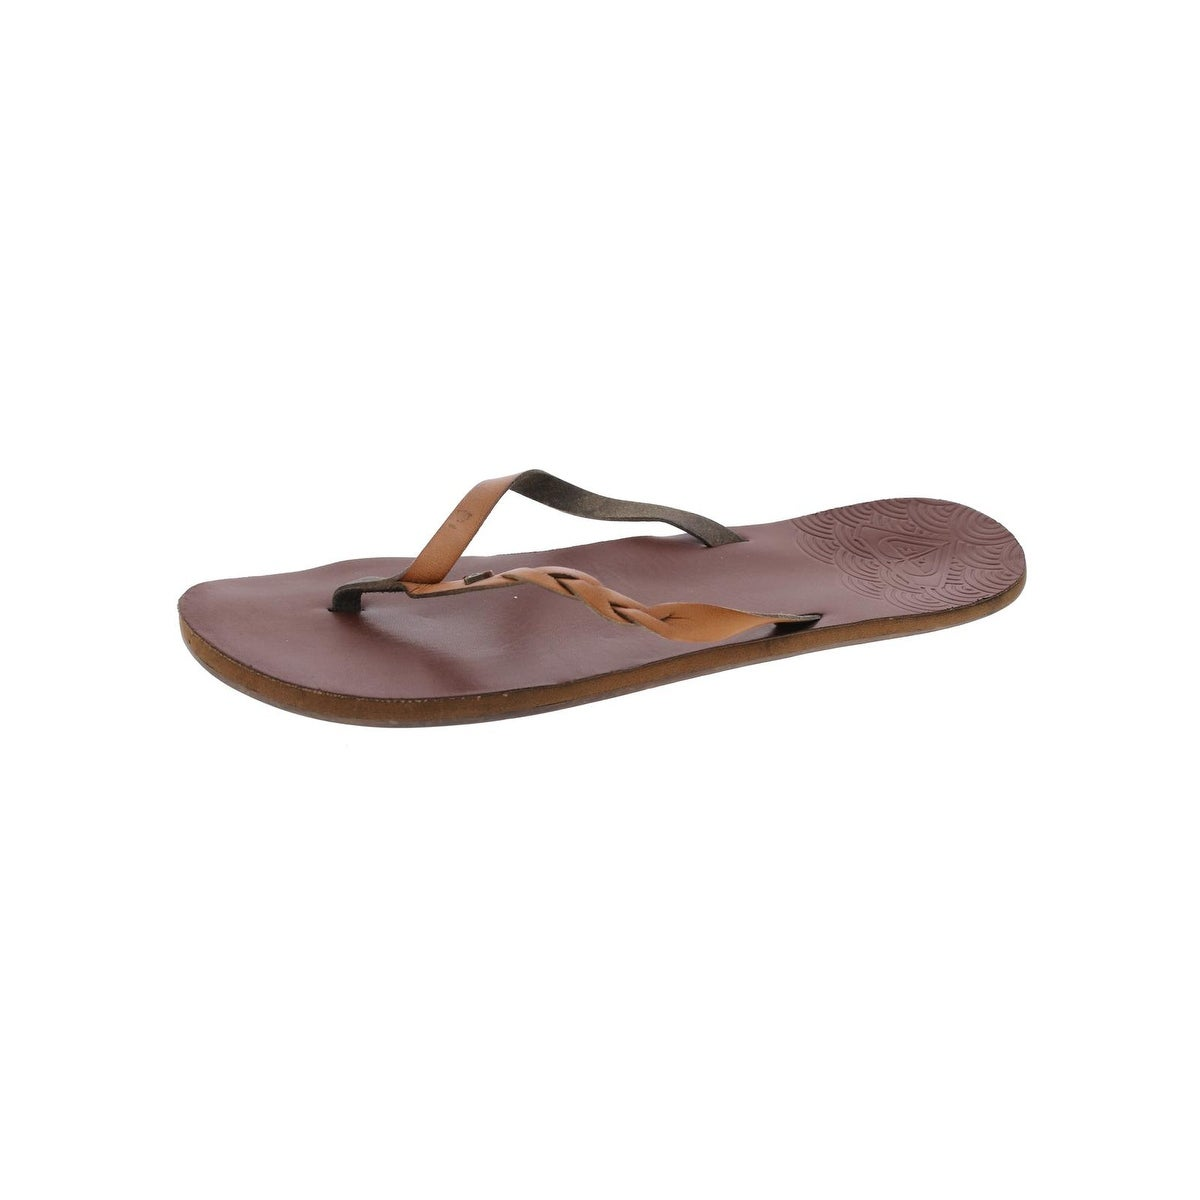 8fb10568c Shop Roxy Womens Liza Flip-Flops Thong Braided - Free Shipping On Orders  Over  45 - Overstock - 20742302